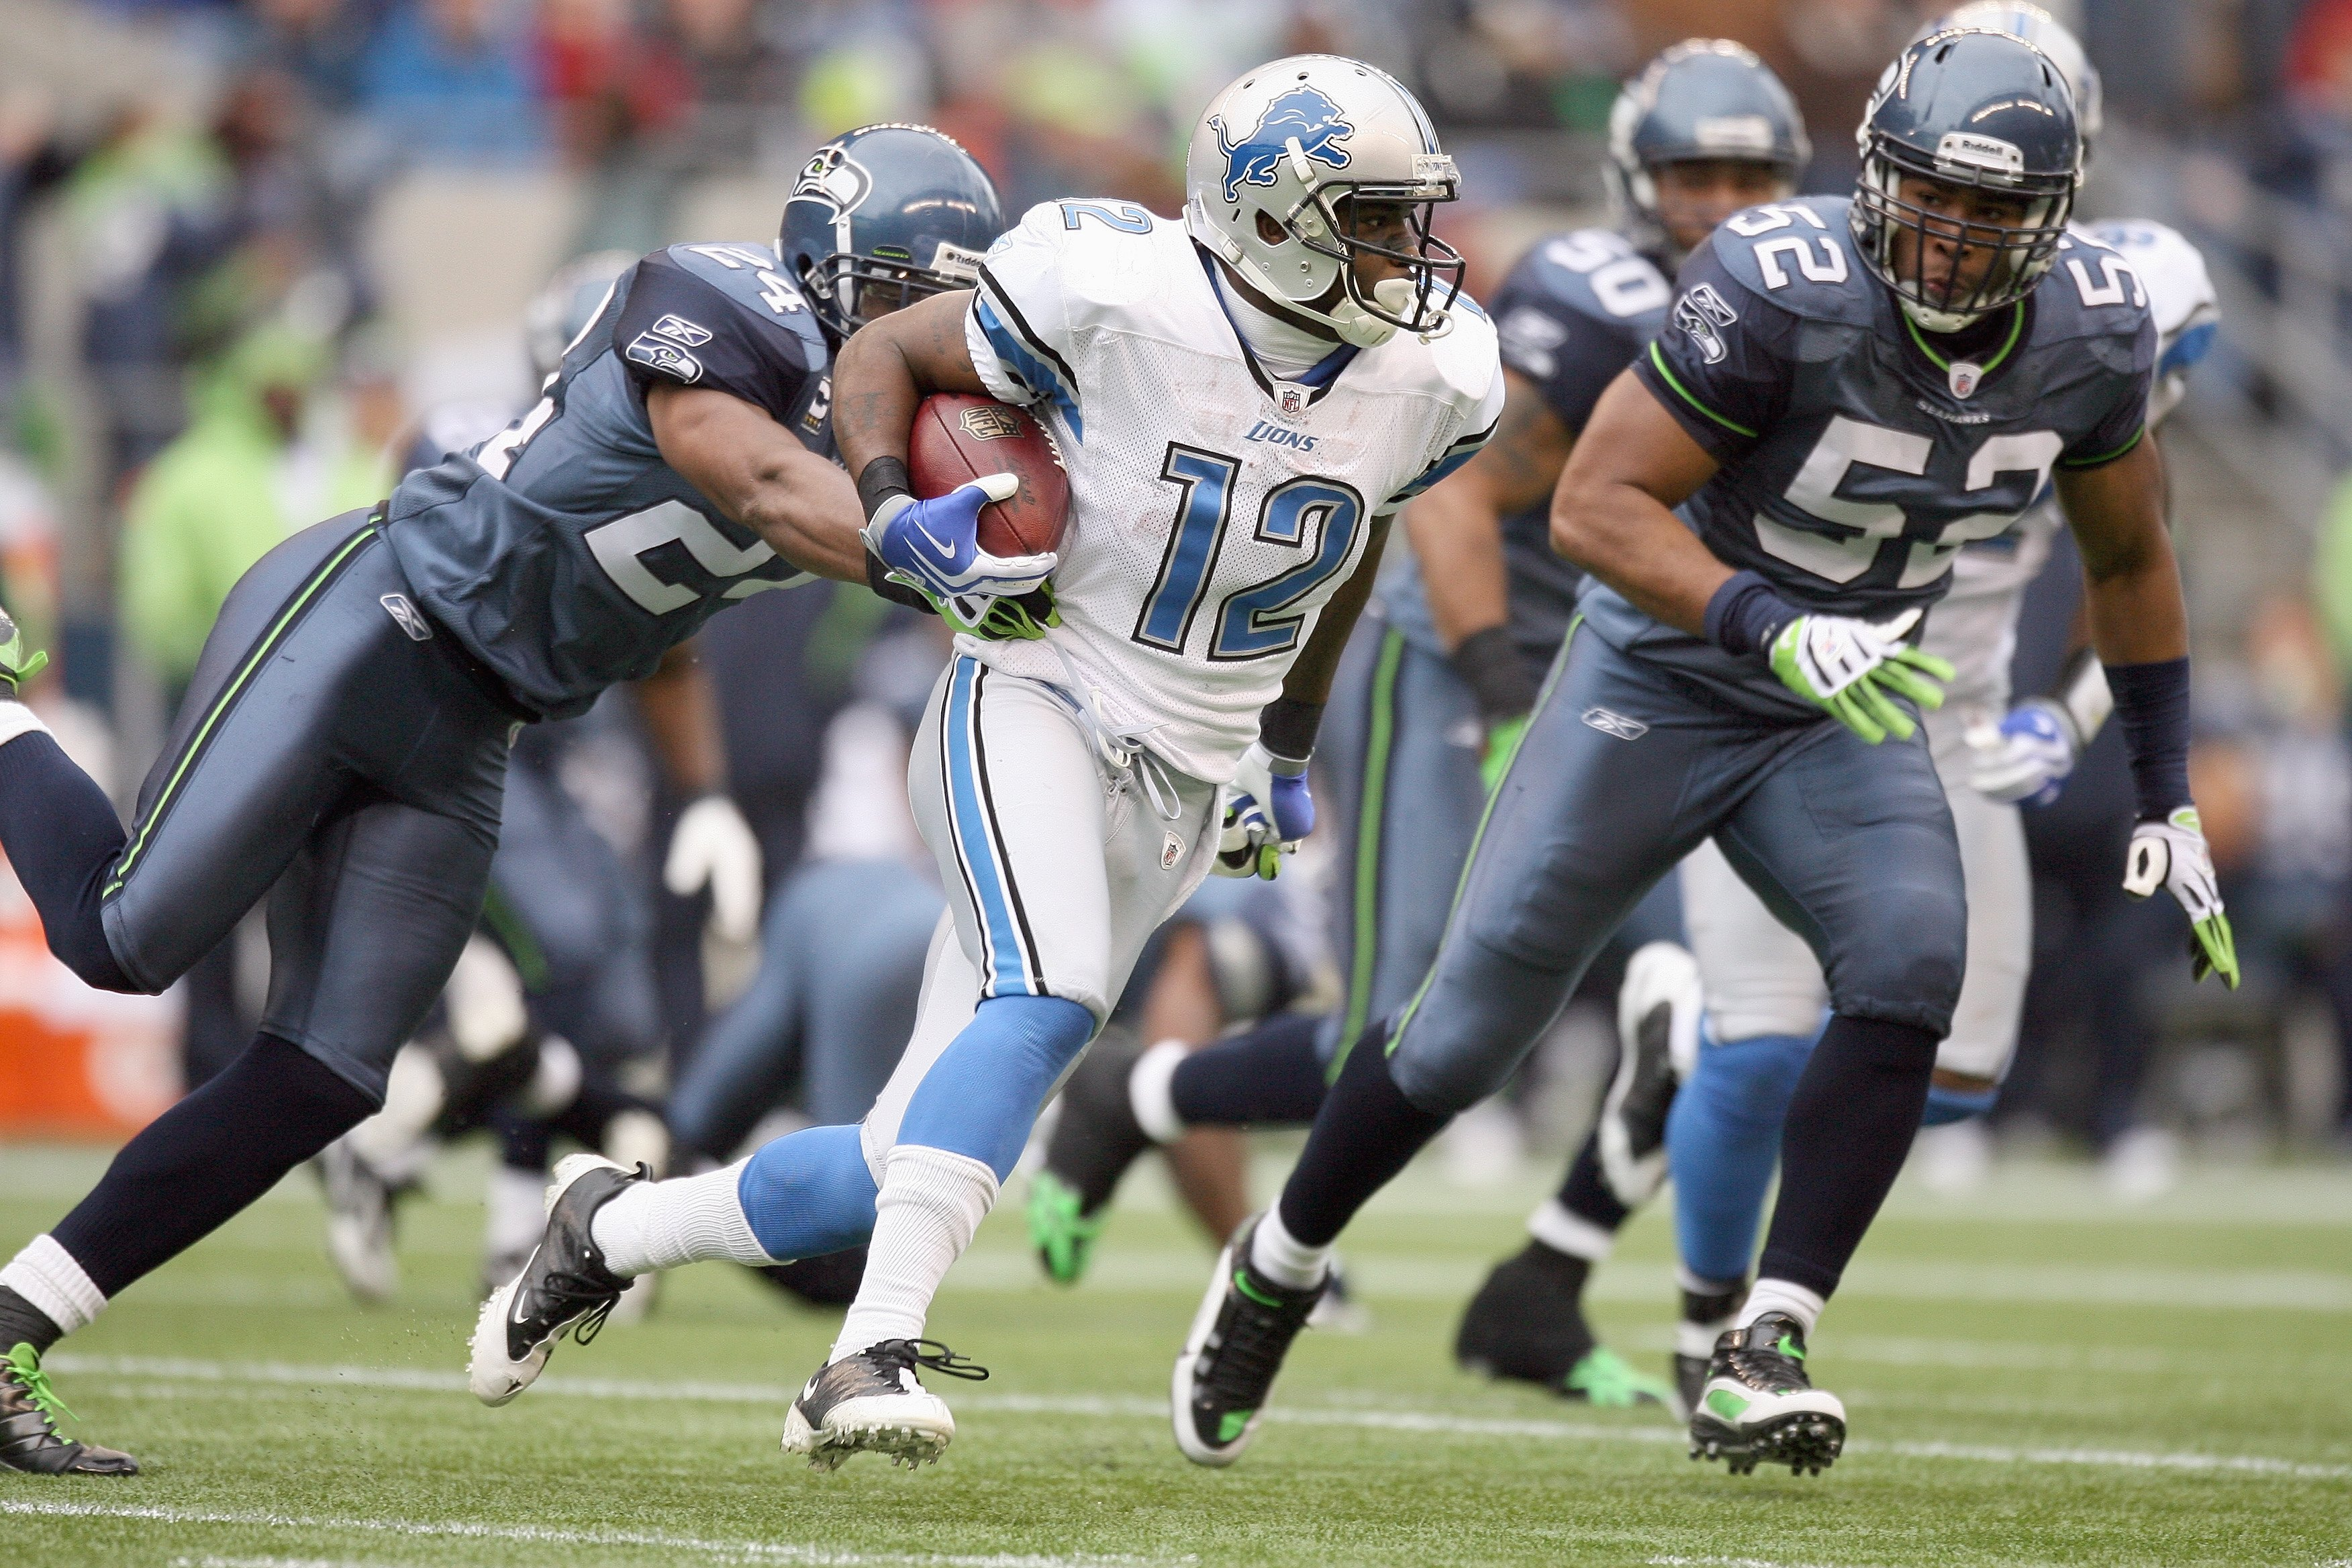 SEATTLE - NOVEMBER 08:  Derrick Williams #12 of the Detroit Lions carries the ball during the game against the Seattle Seahawks on November 8, 2009 at Qwest Field in Seattle, Washington. The Seahawks defeated the Lions 32-20. (Photo by Otto Greule Jr/Gett